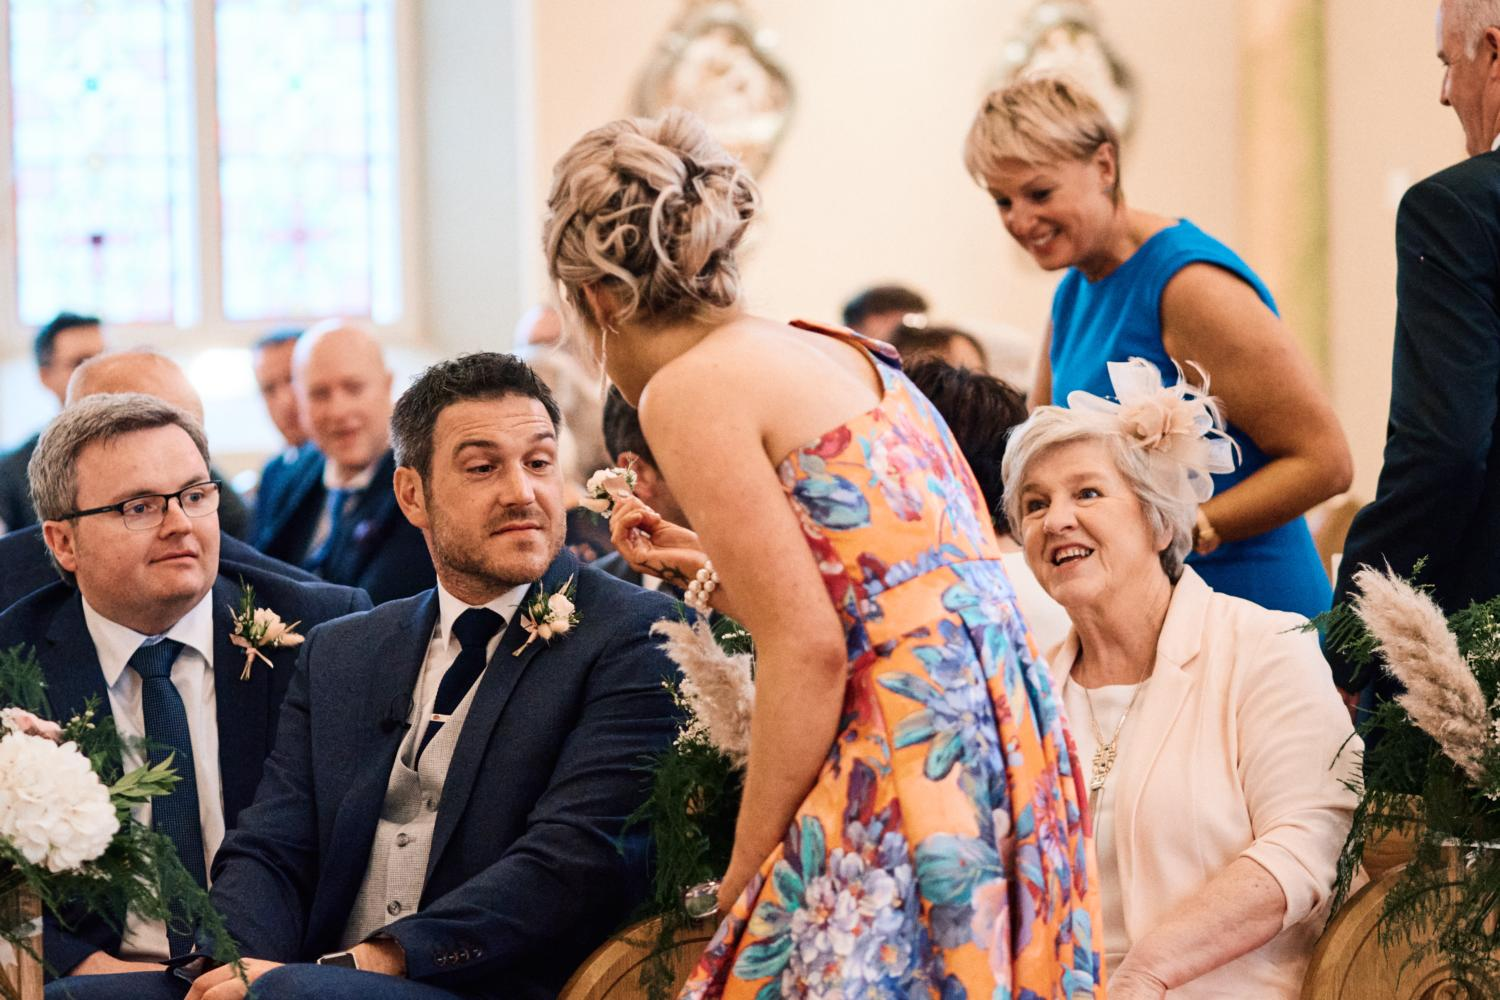 A groom receives a flower before a wedding ceremony in Dungannon